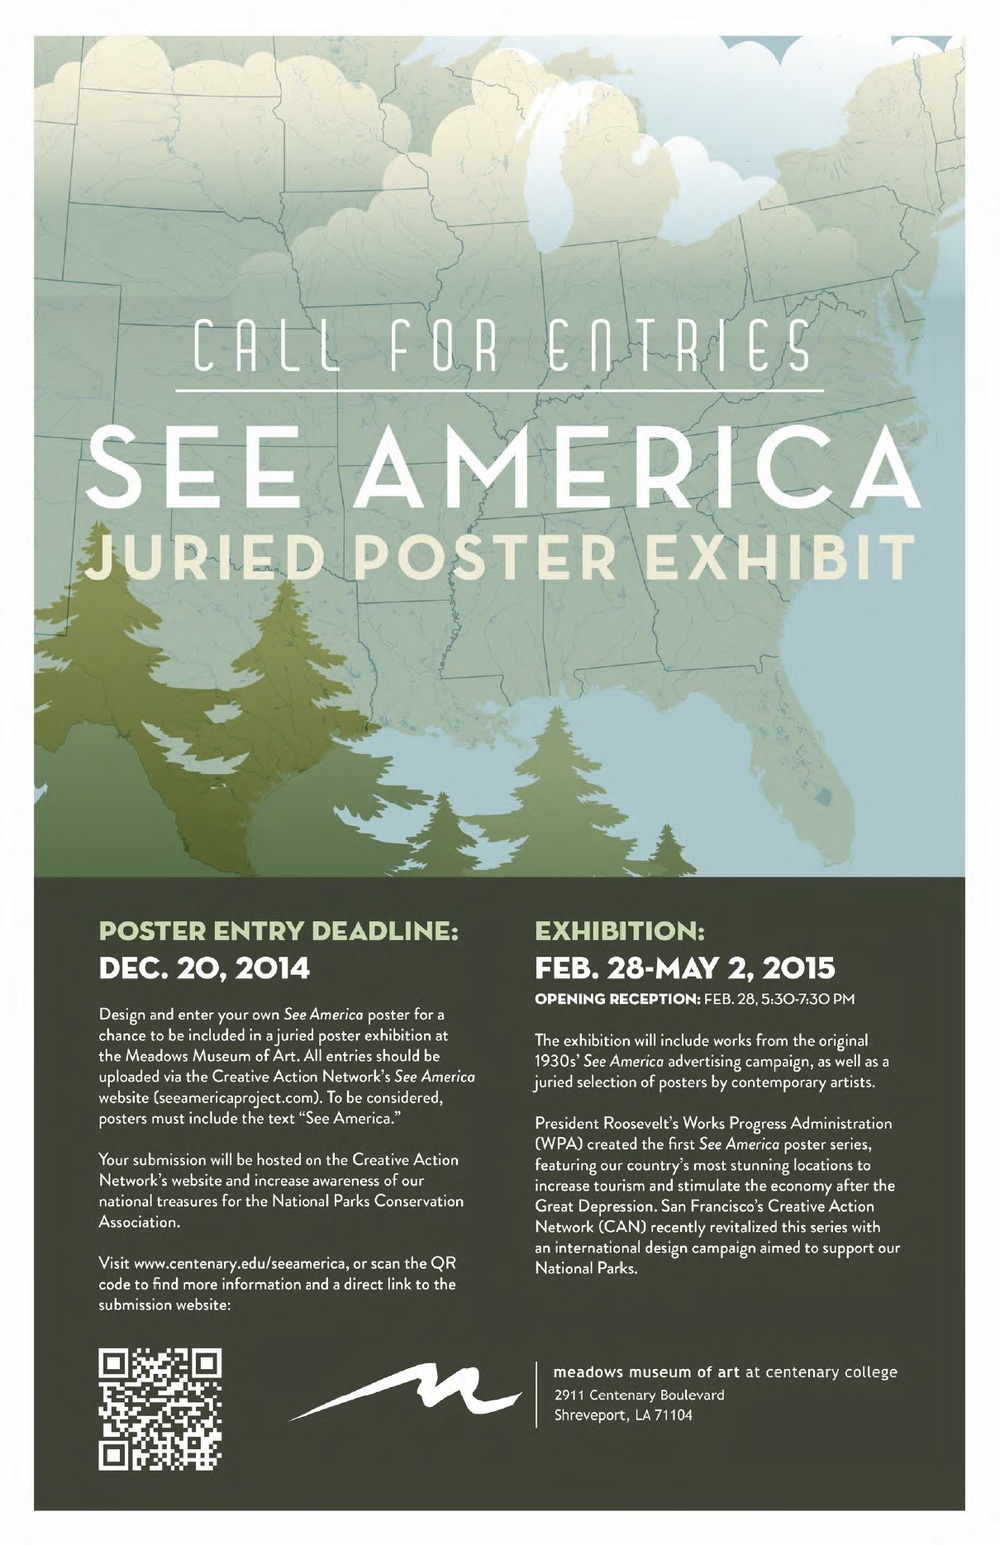 See America at the Meadows Museum of Art at Centenary College